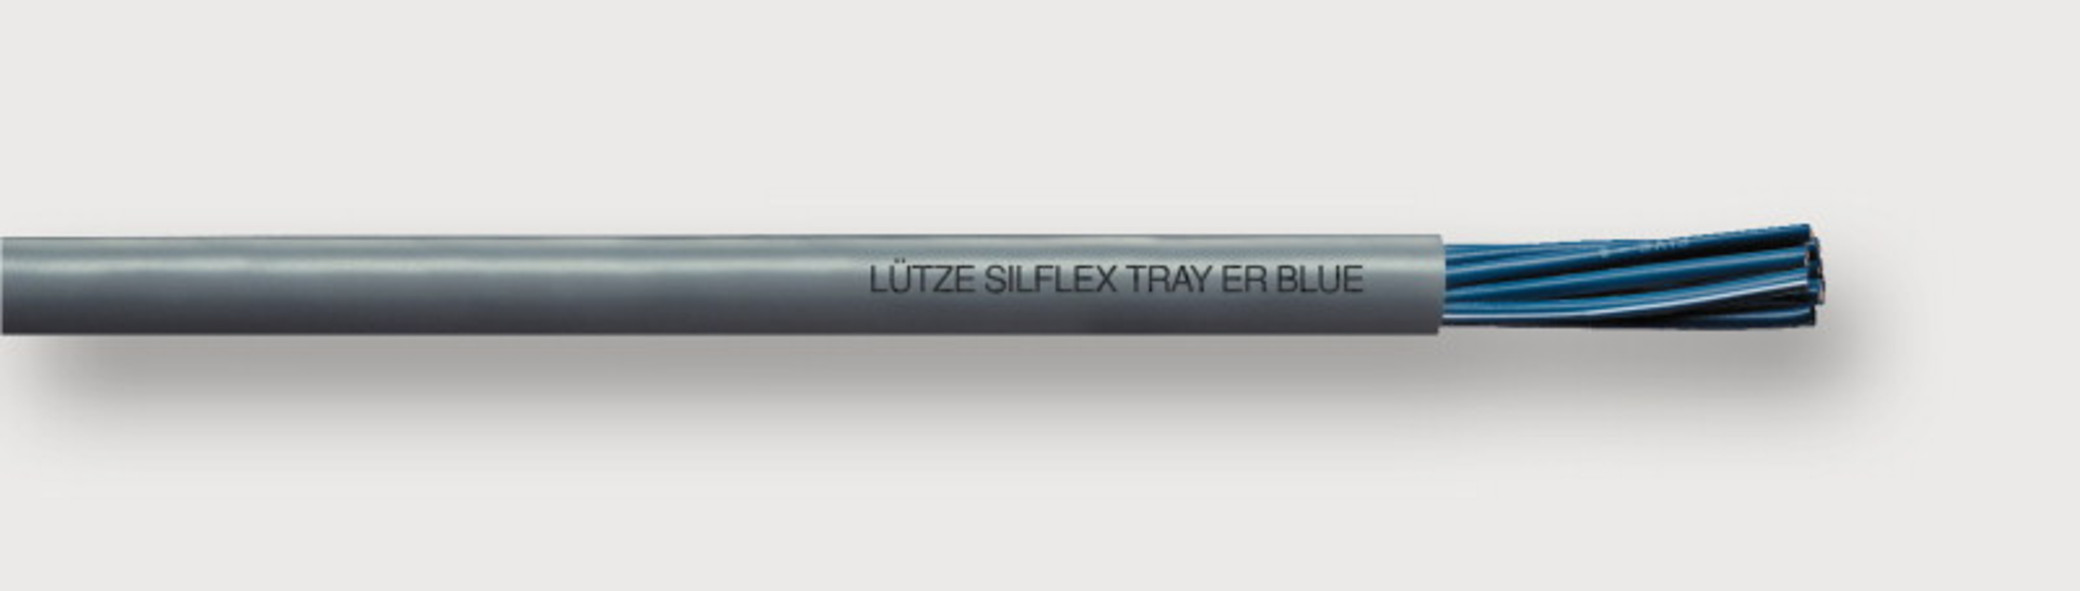 A3251404 - LÜTZE SILFLEX® Tray-ER Blue PVC with UL/TC-ER/CE Approvals, Blue Conductors for 24 V Applications